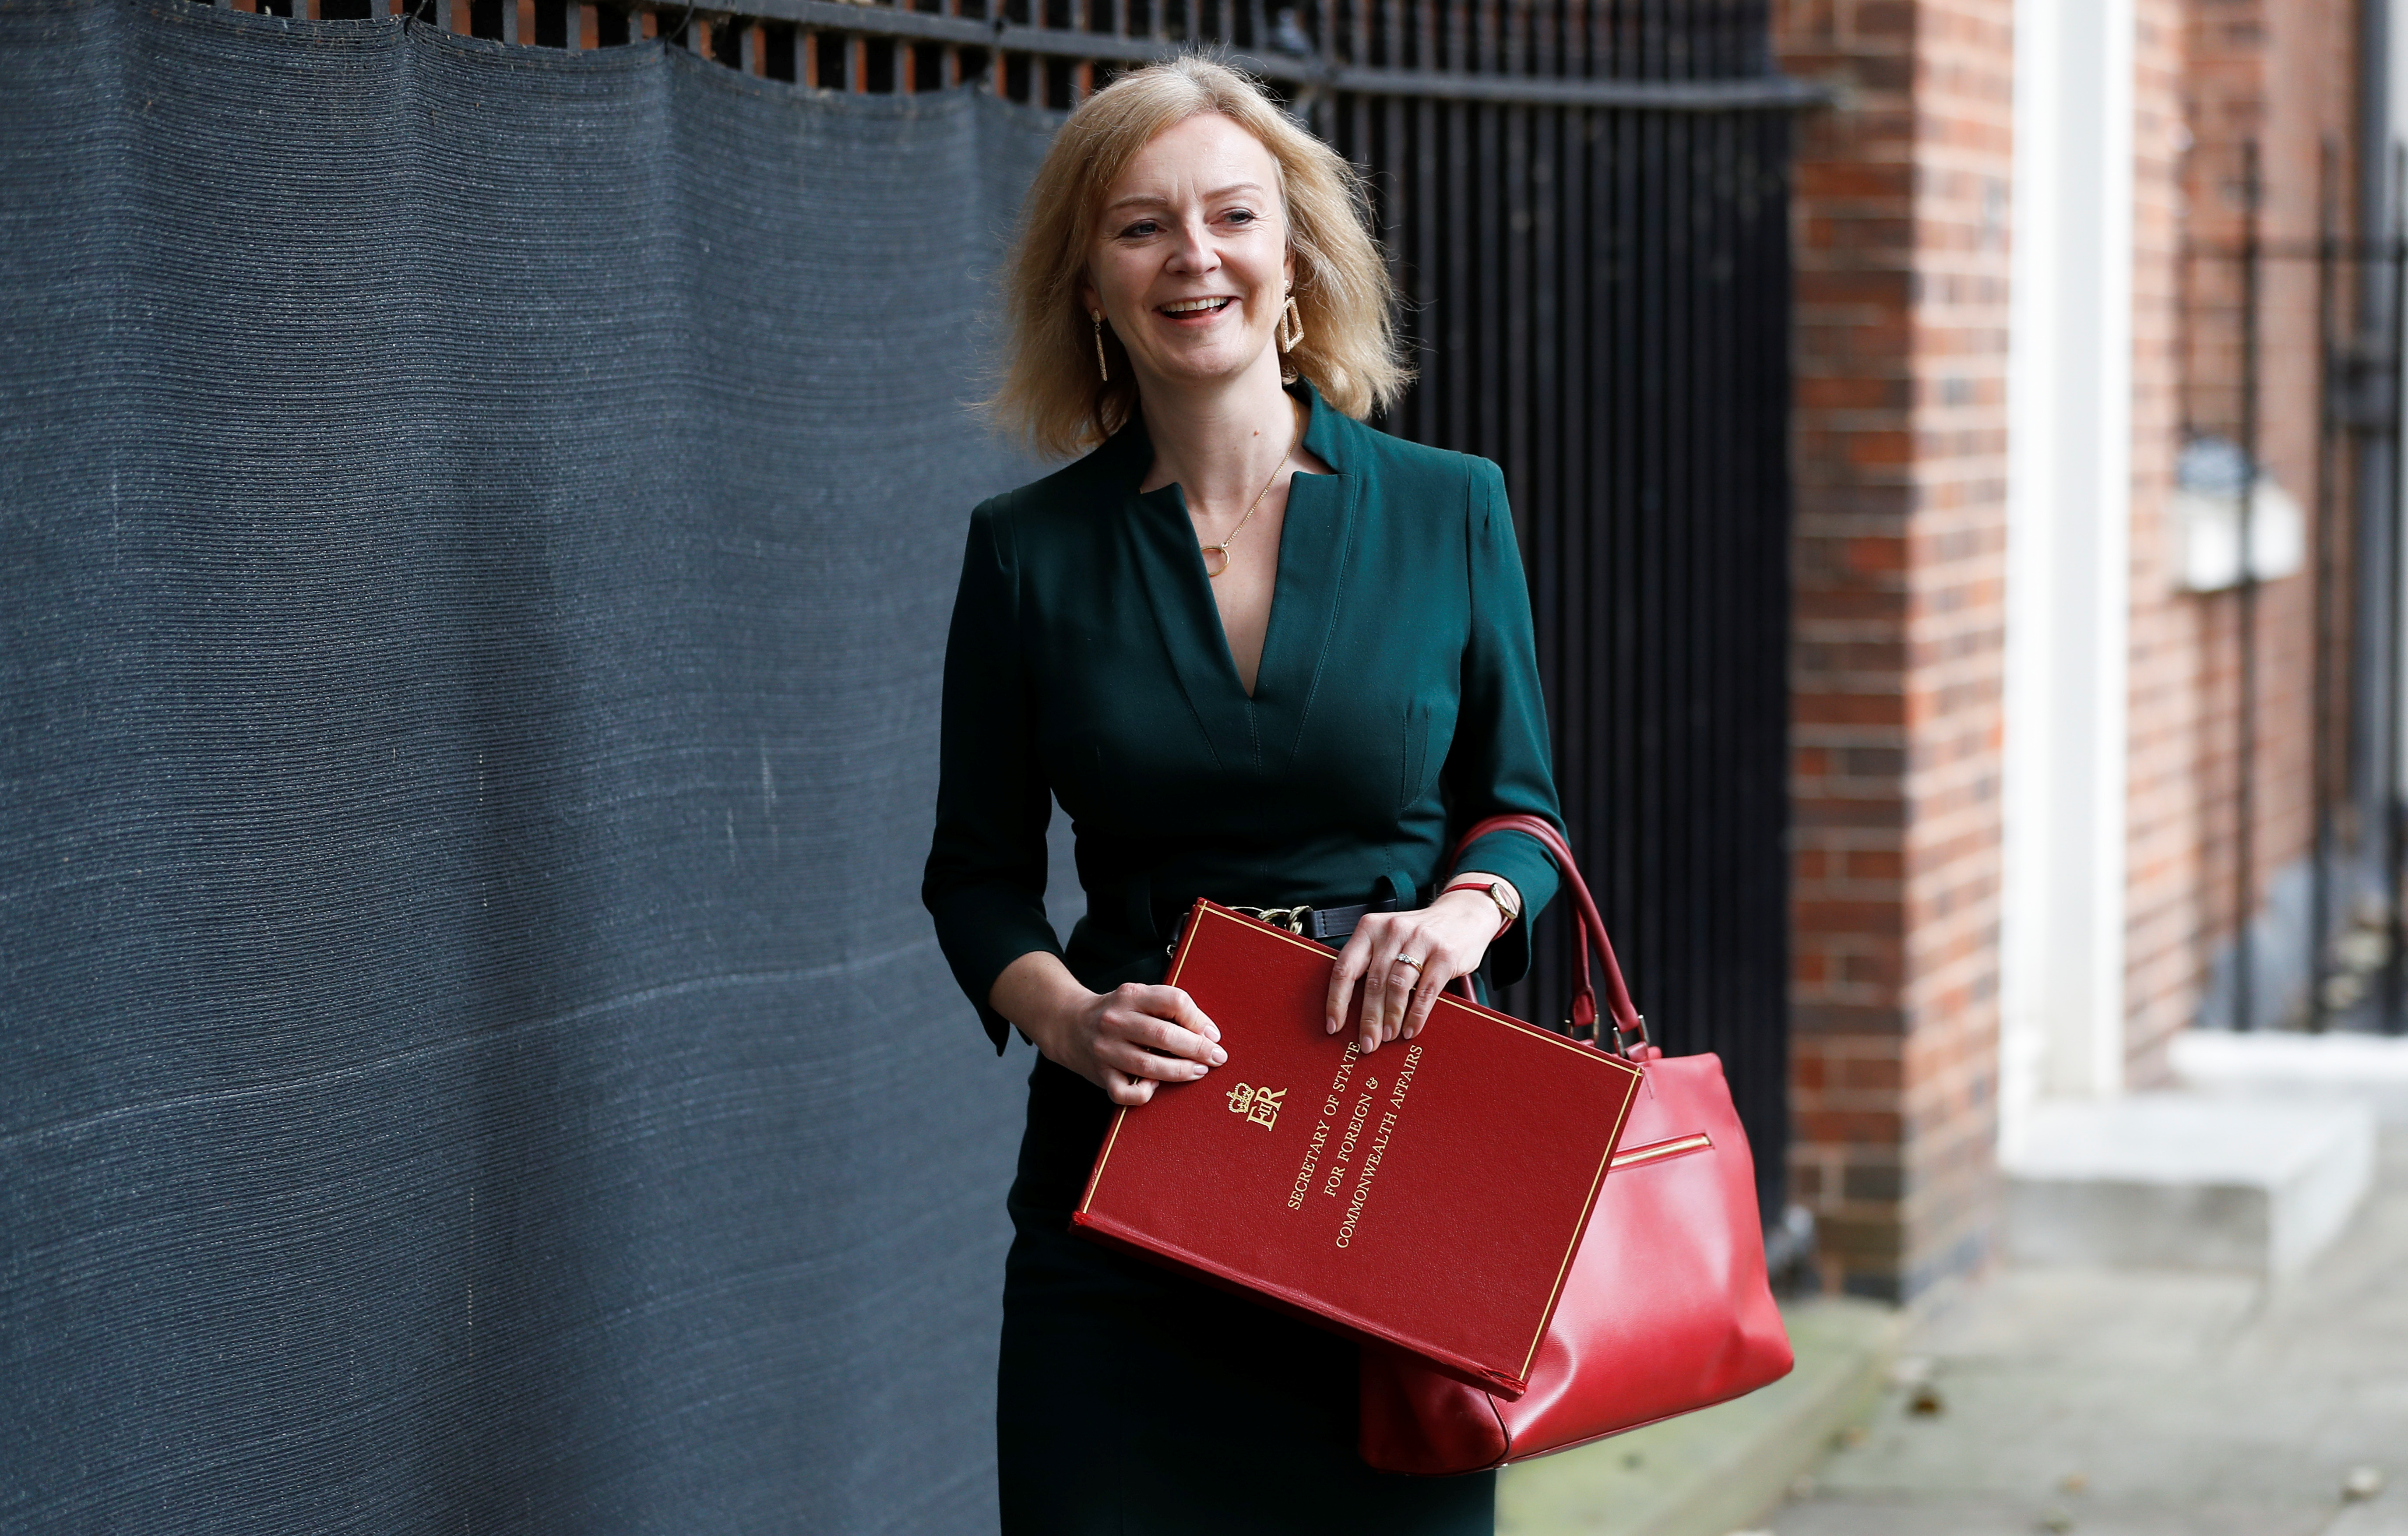 Britain's recently appointed Foreign Secretary Liz Truss leaves Downing Street after the cabinet meeting, in London, Britain September 17, 2021. REUTERS/Peter Nicholls